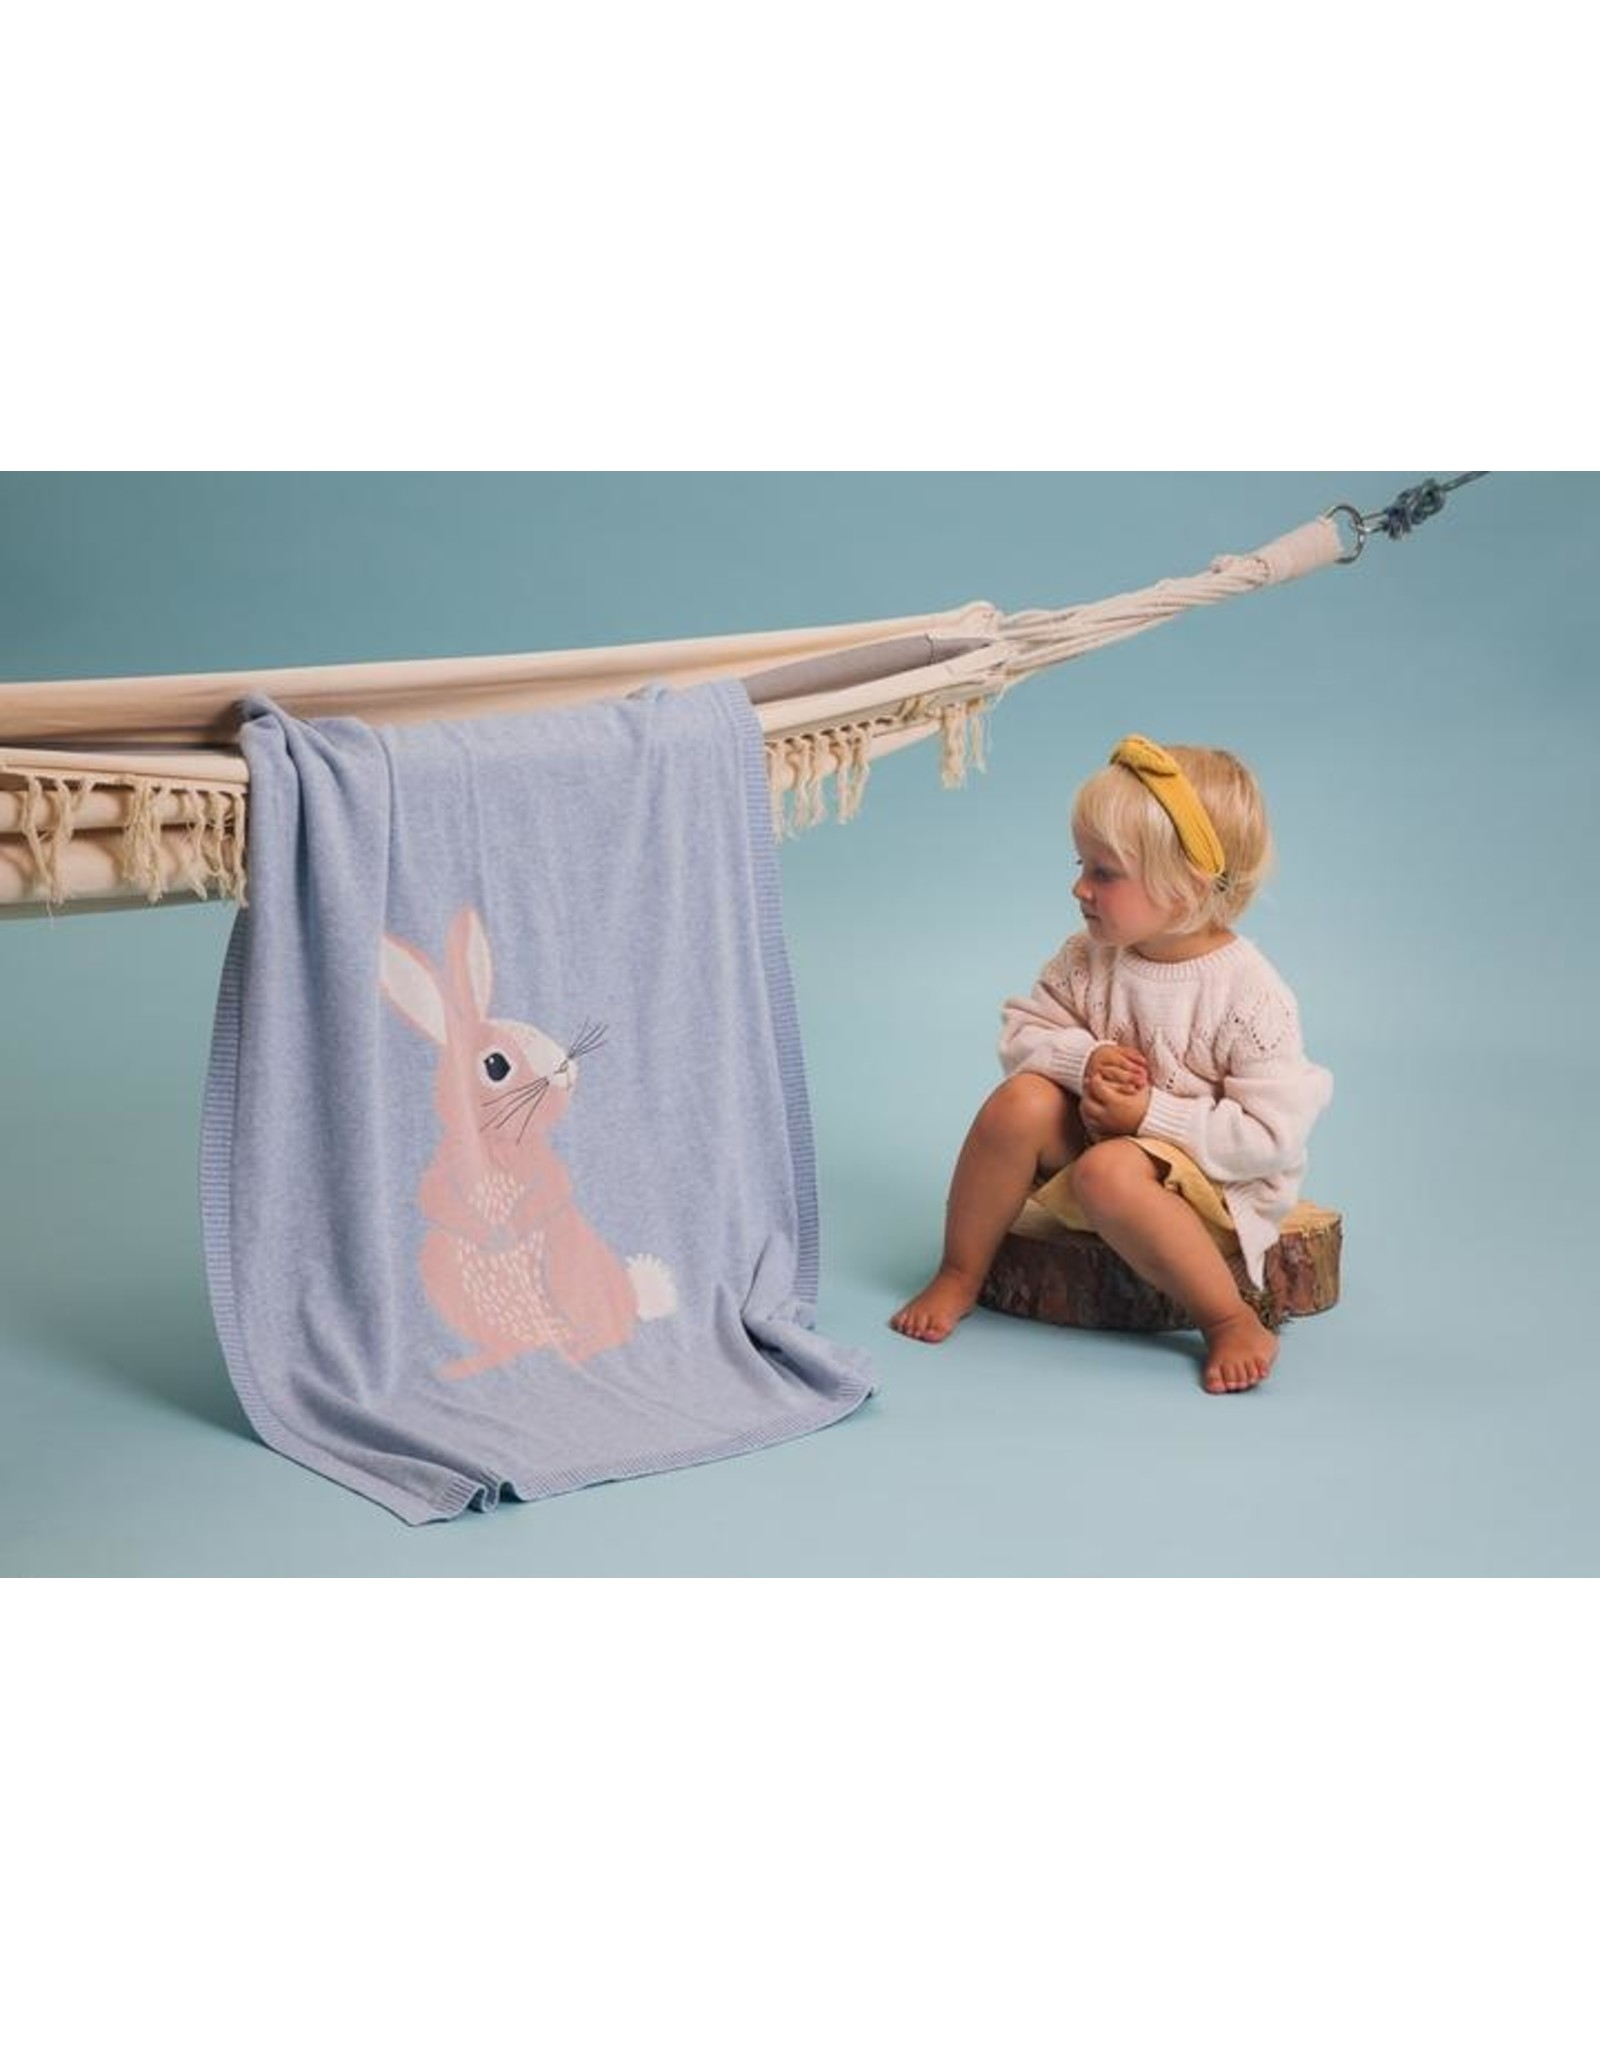 Bizzi Growin Baby Blanket- Cotton Tail Bunny Knitted Blanket